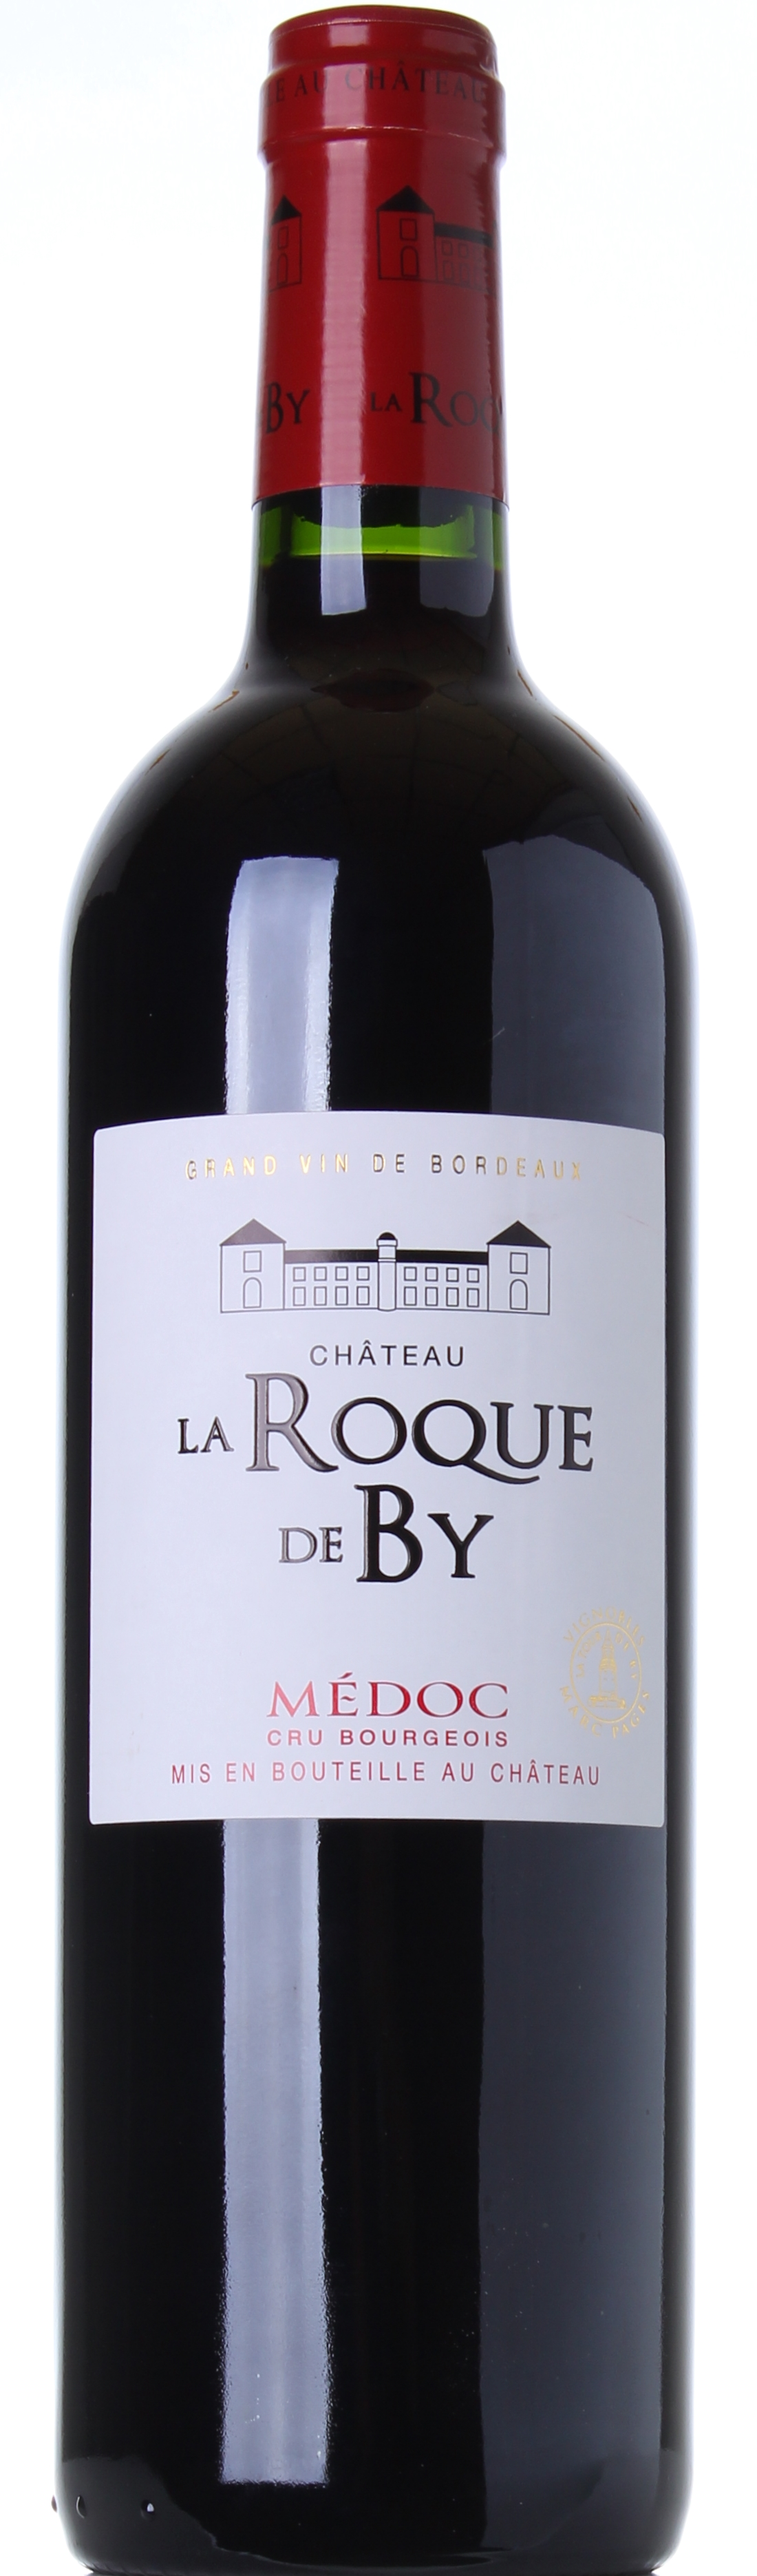 CHATEAU LA TOUR DE BY CHATEAU LA ROQUE DE BY 2010